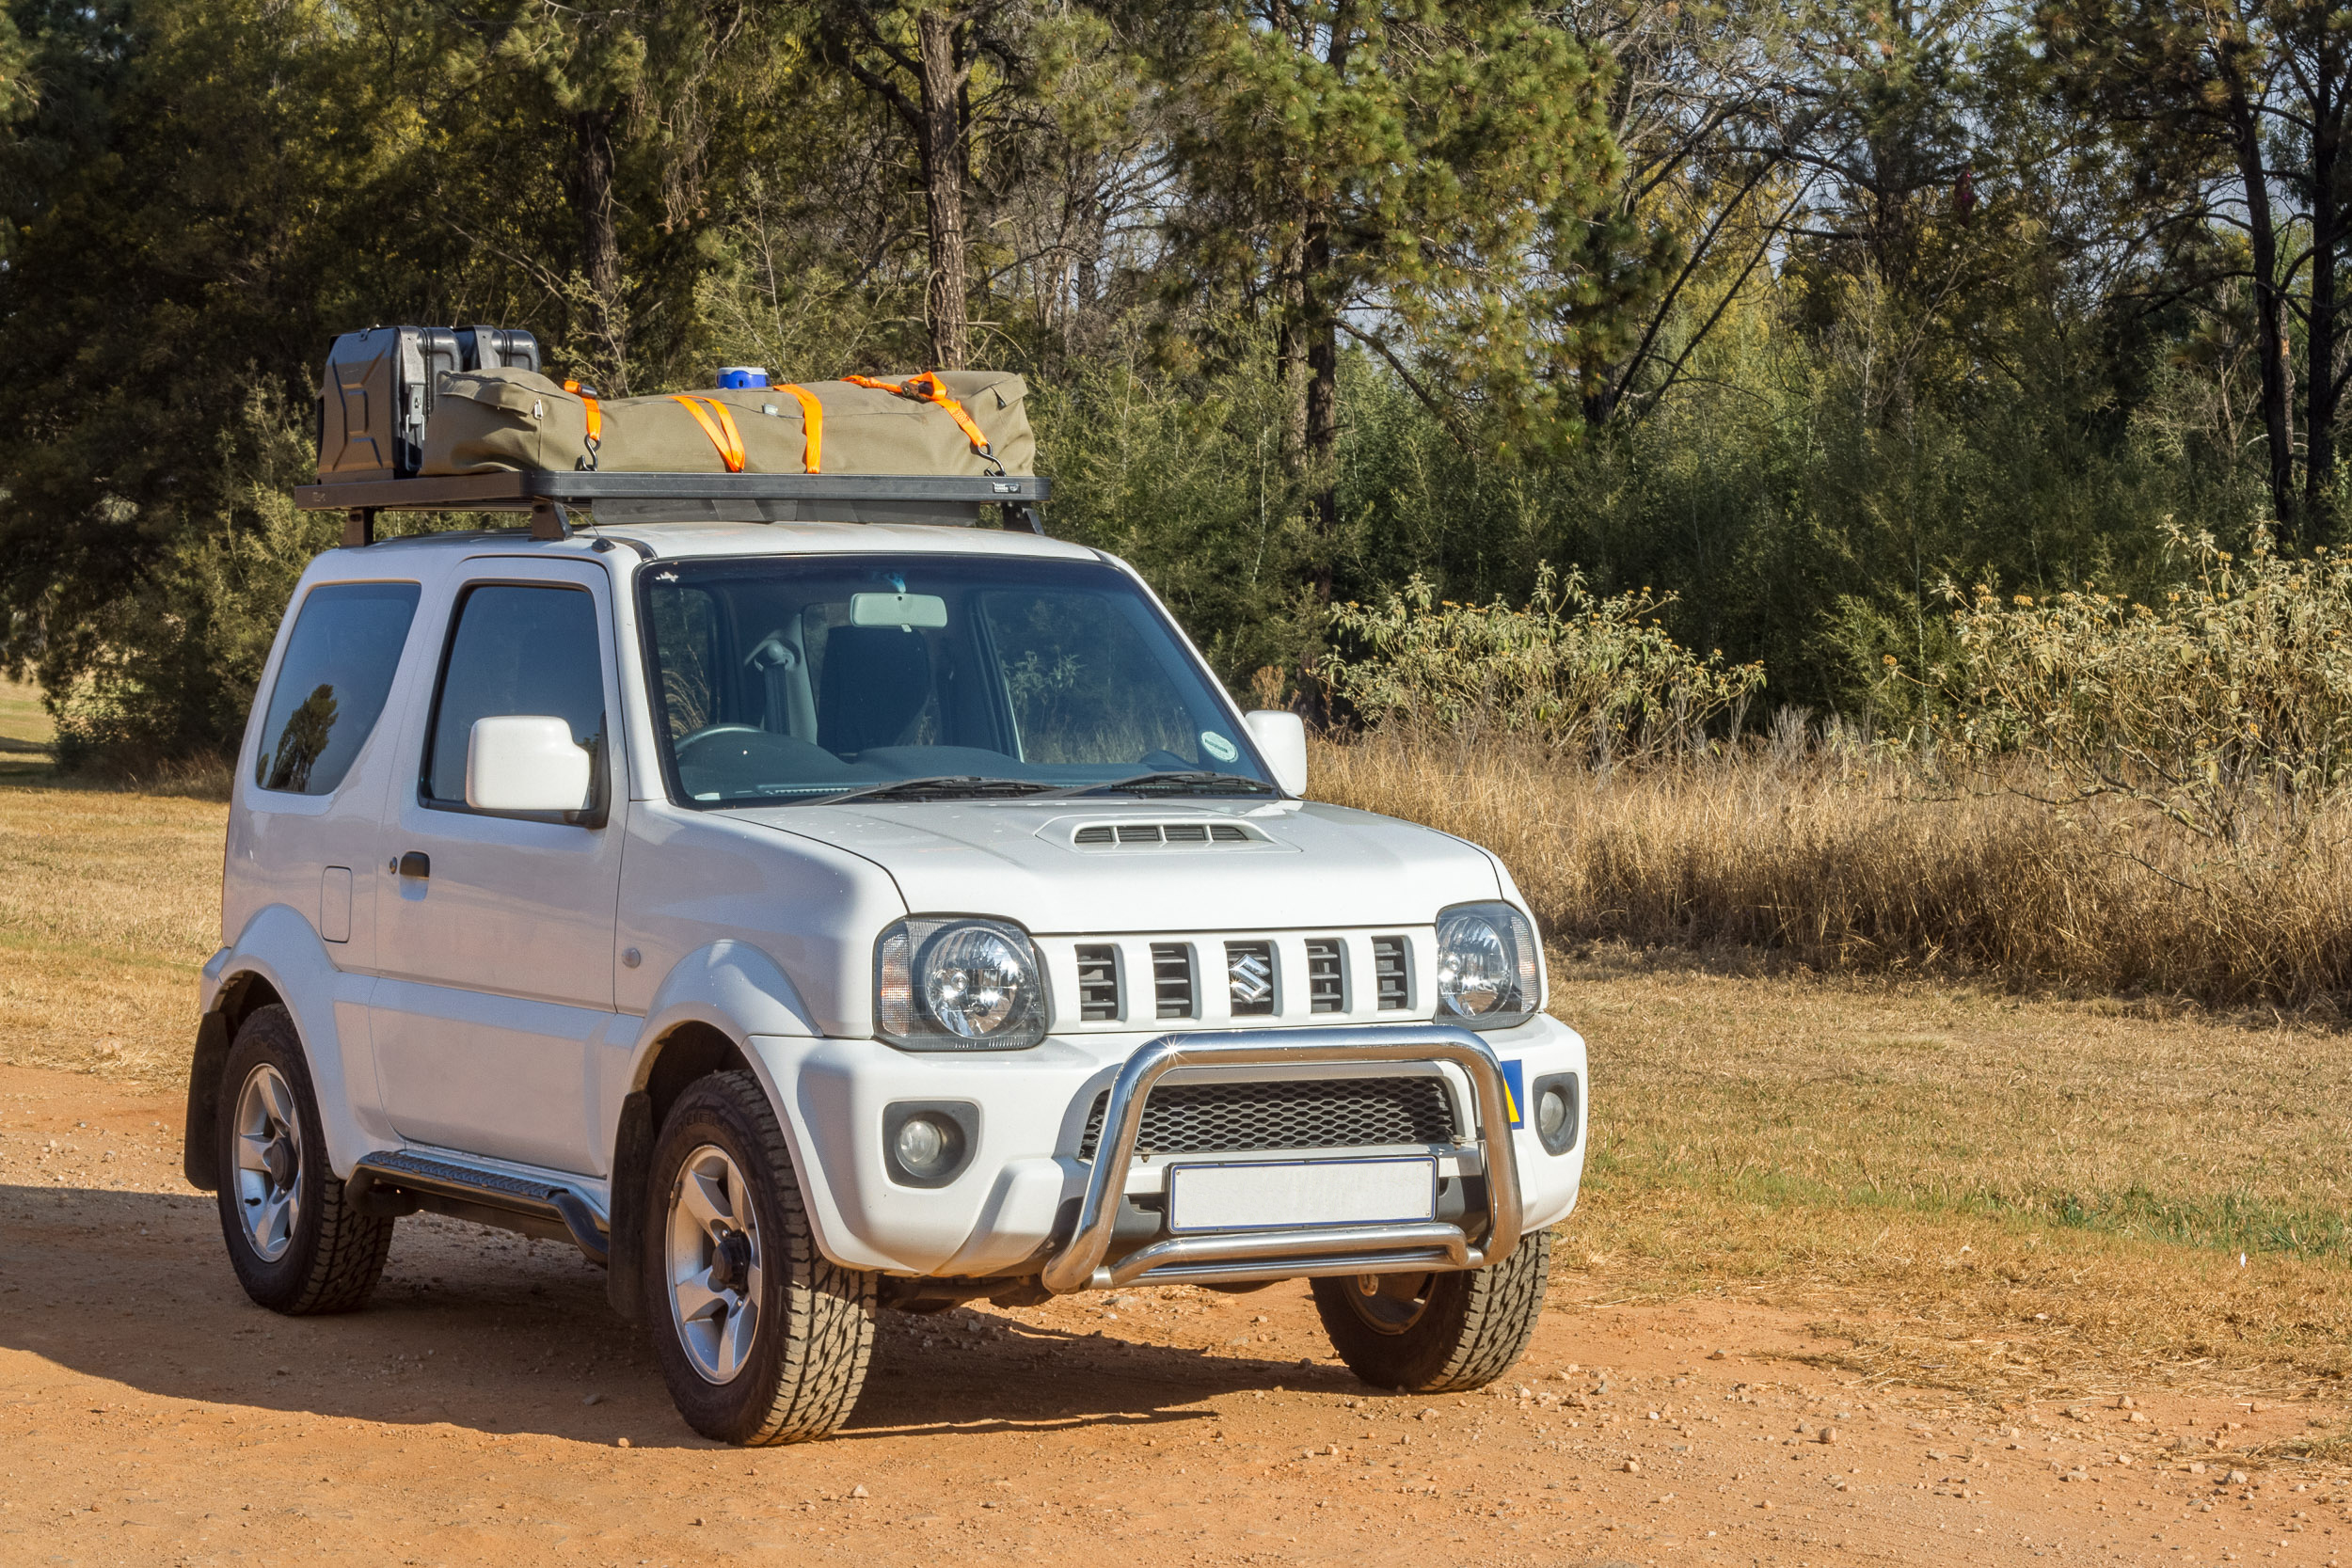 Self drive vacations in South Africa with the Suzuki Jimny